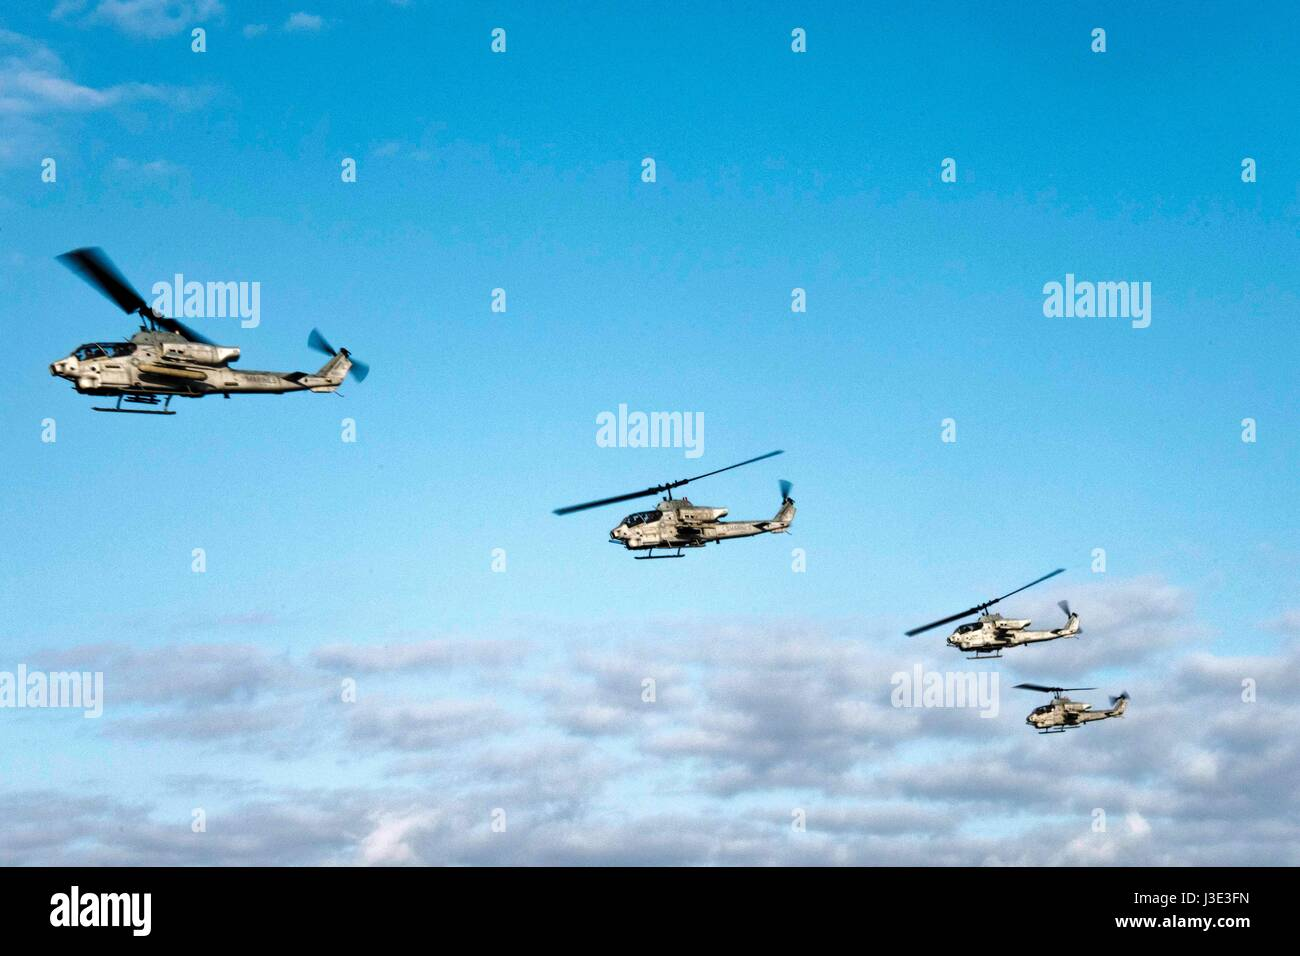 Four USMC AH-1W Super Cobra attack helicopters fly in formation over Buckner Bay April 5, 2017 in the Pacific Ocean. - Stock Image